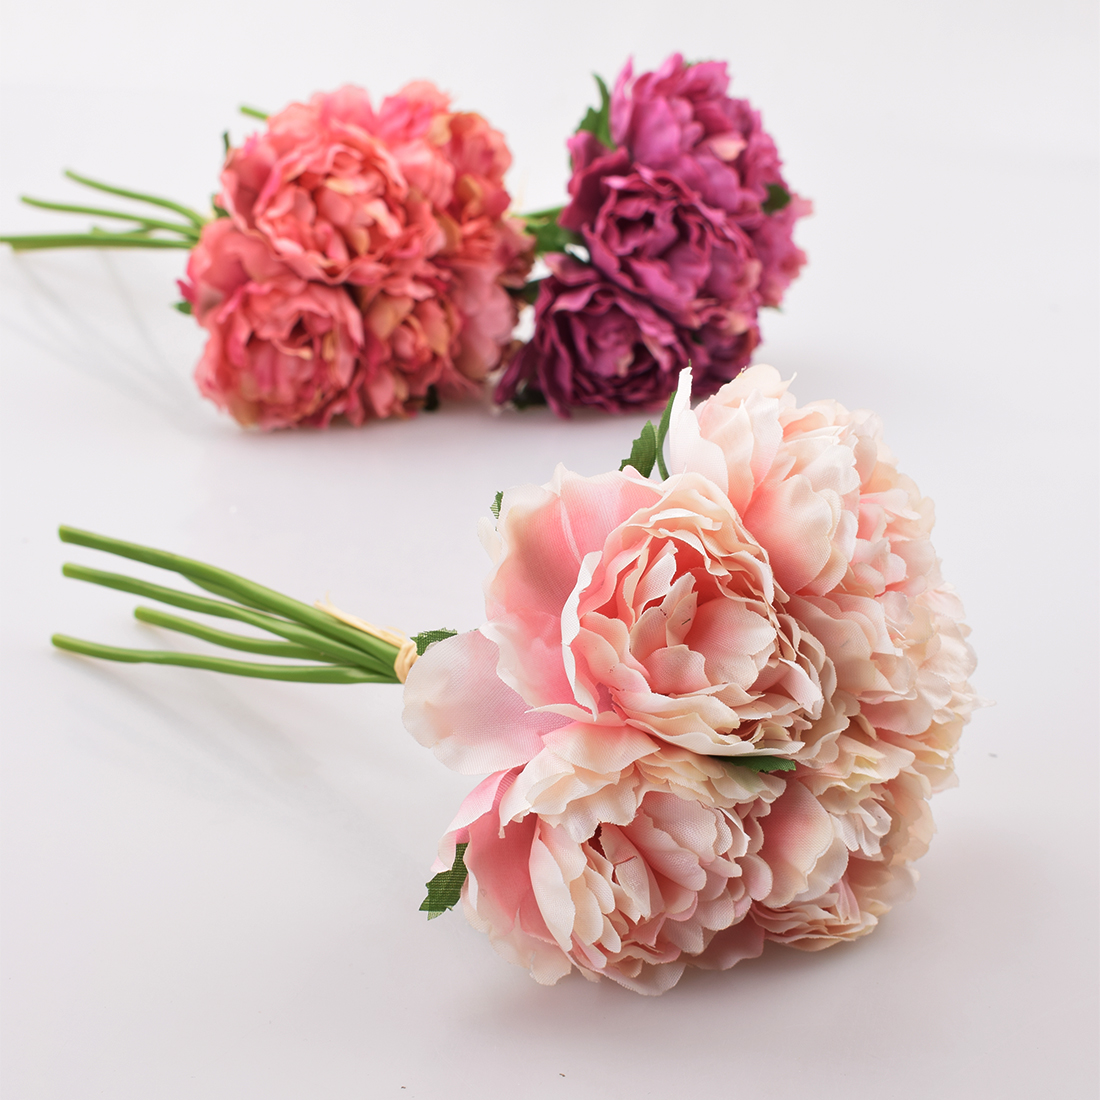 5 Heads Artifical Peony Silk Flower Bunch Hydrangea Home Wedding Party Decor